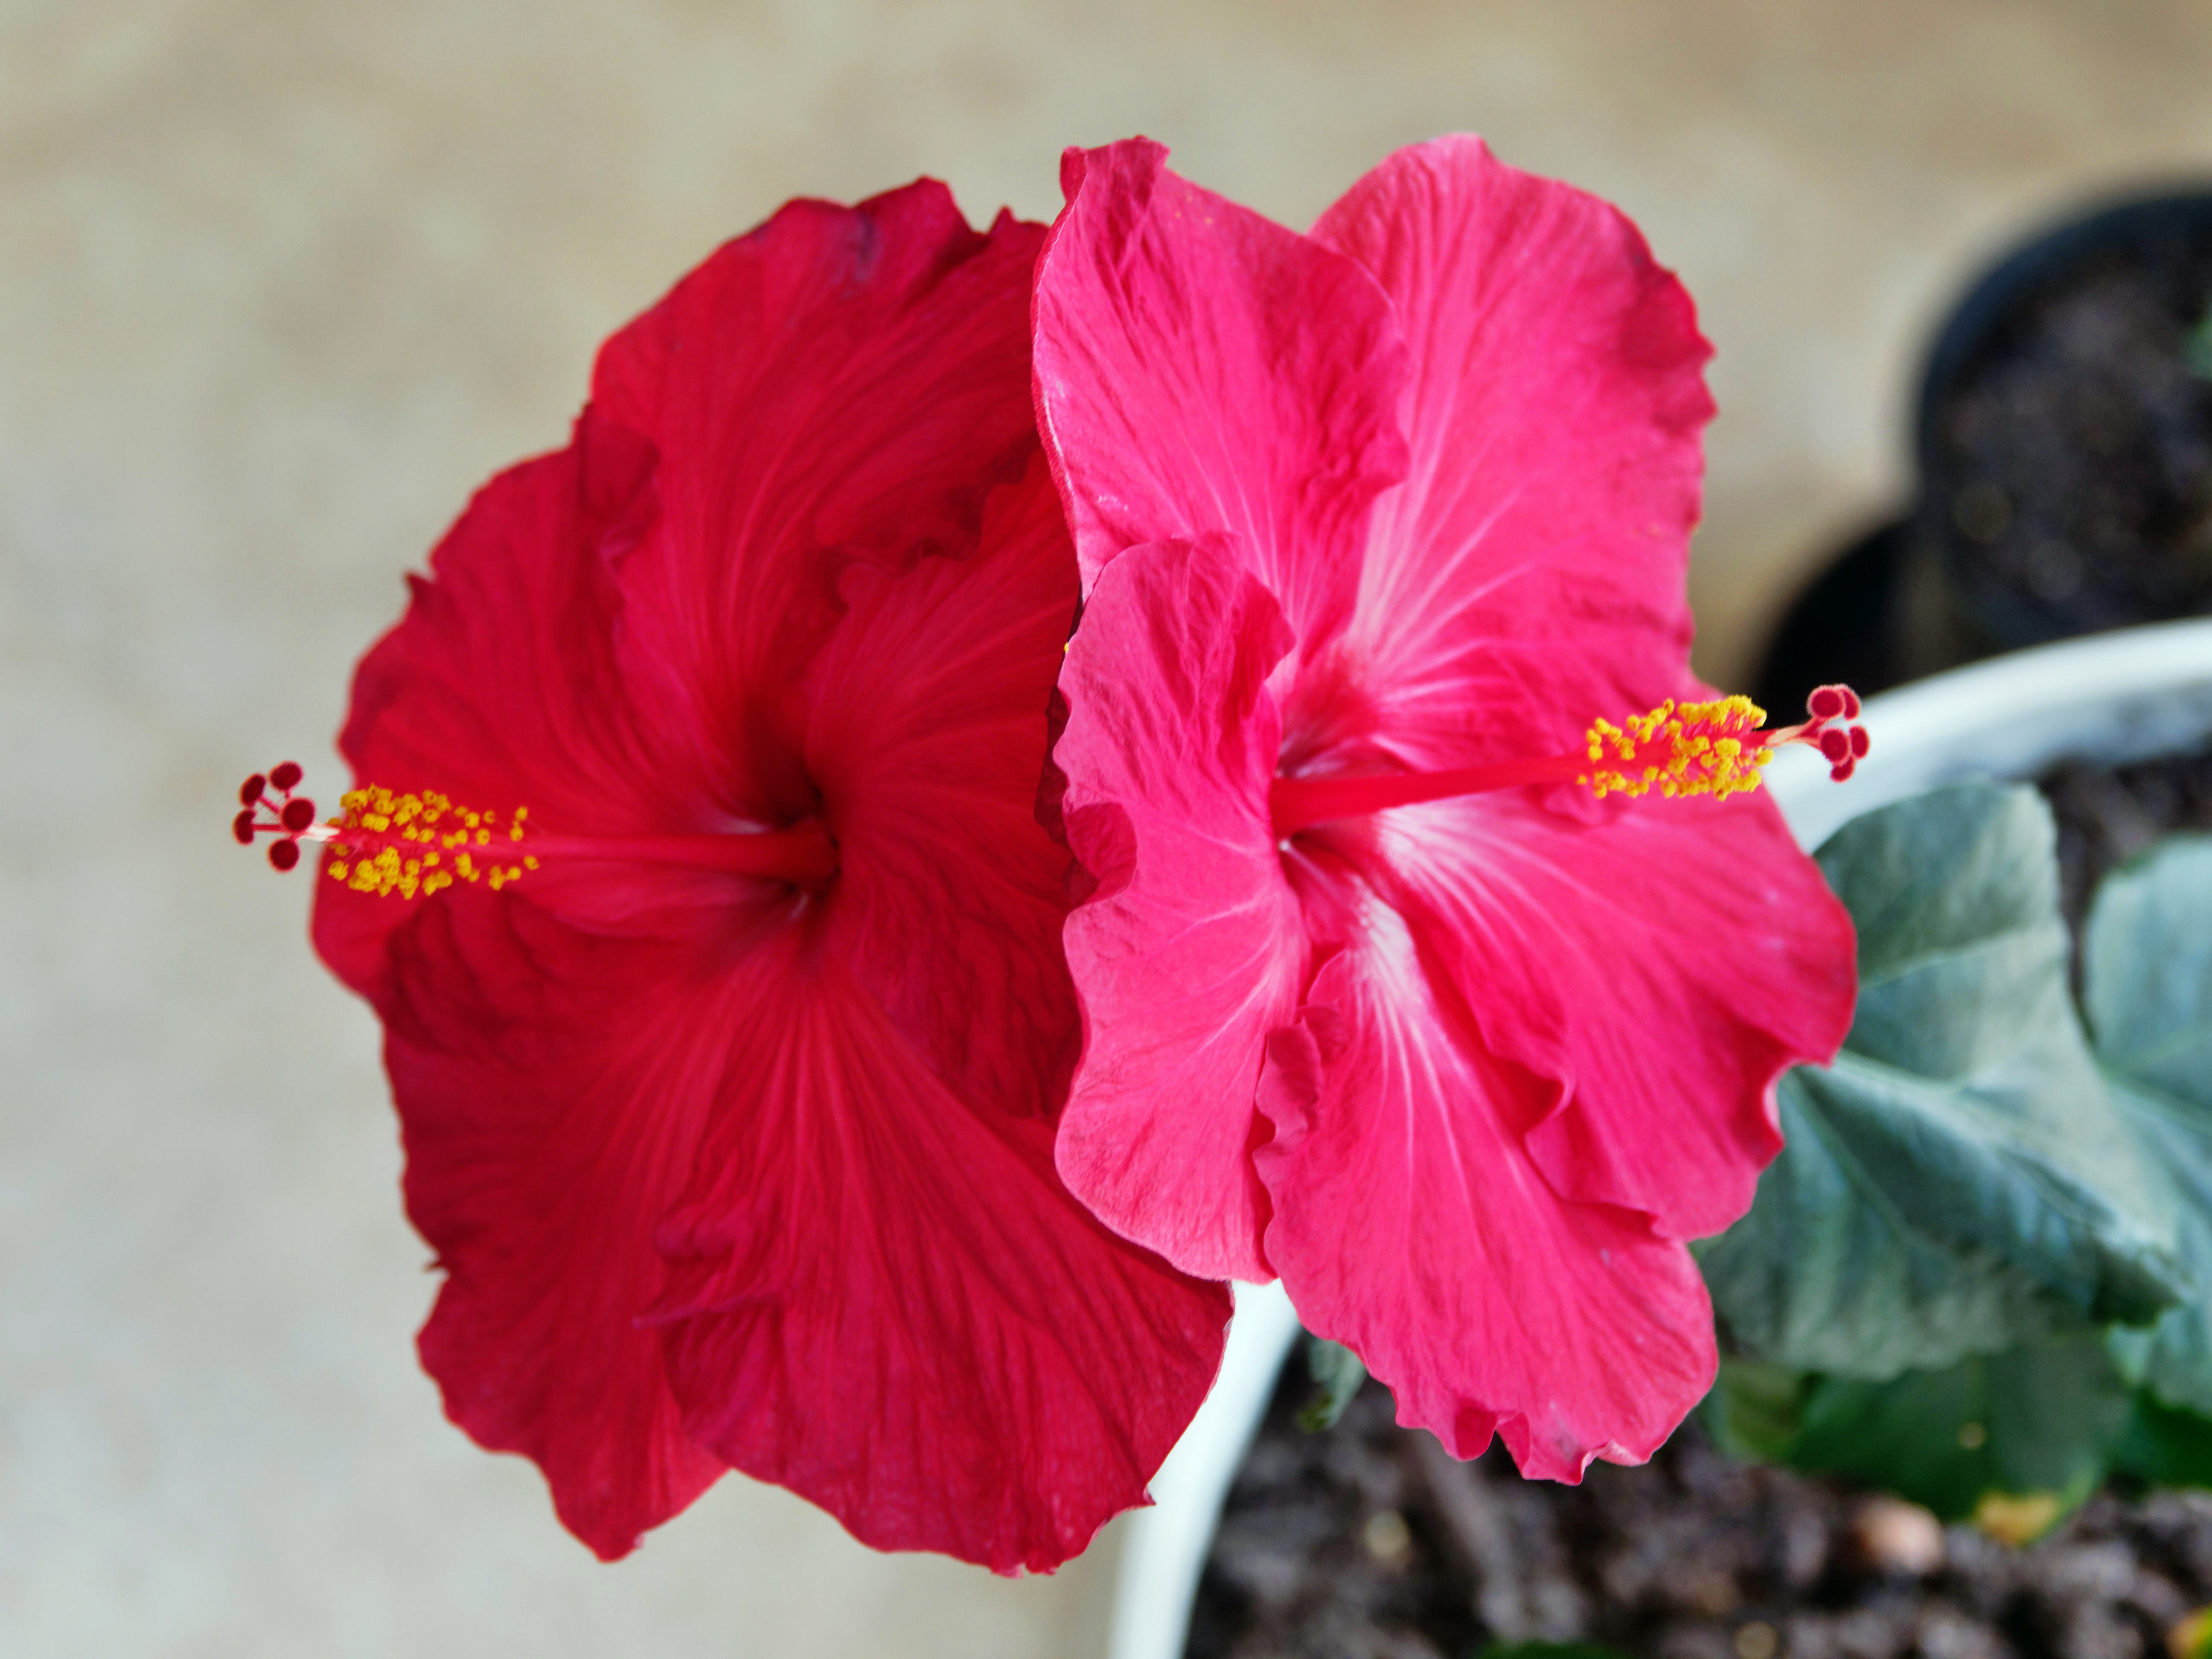 This should be Hibiscus-3.jpeg.  Is it missing?